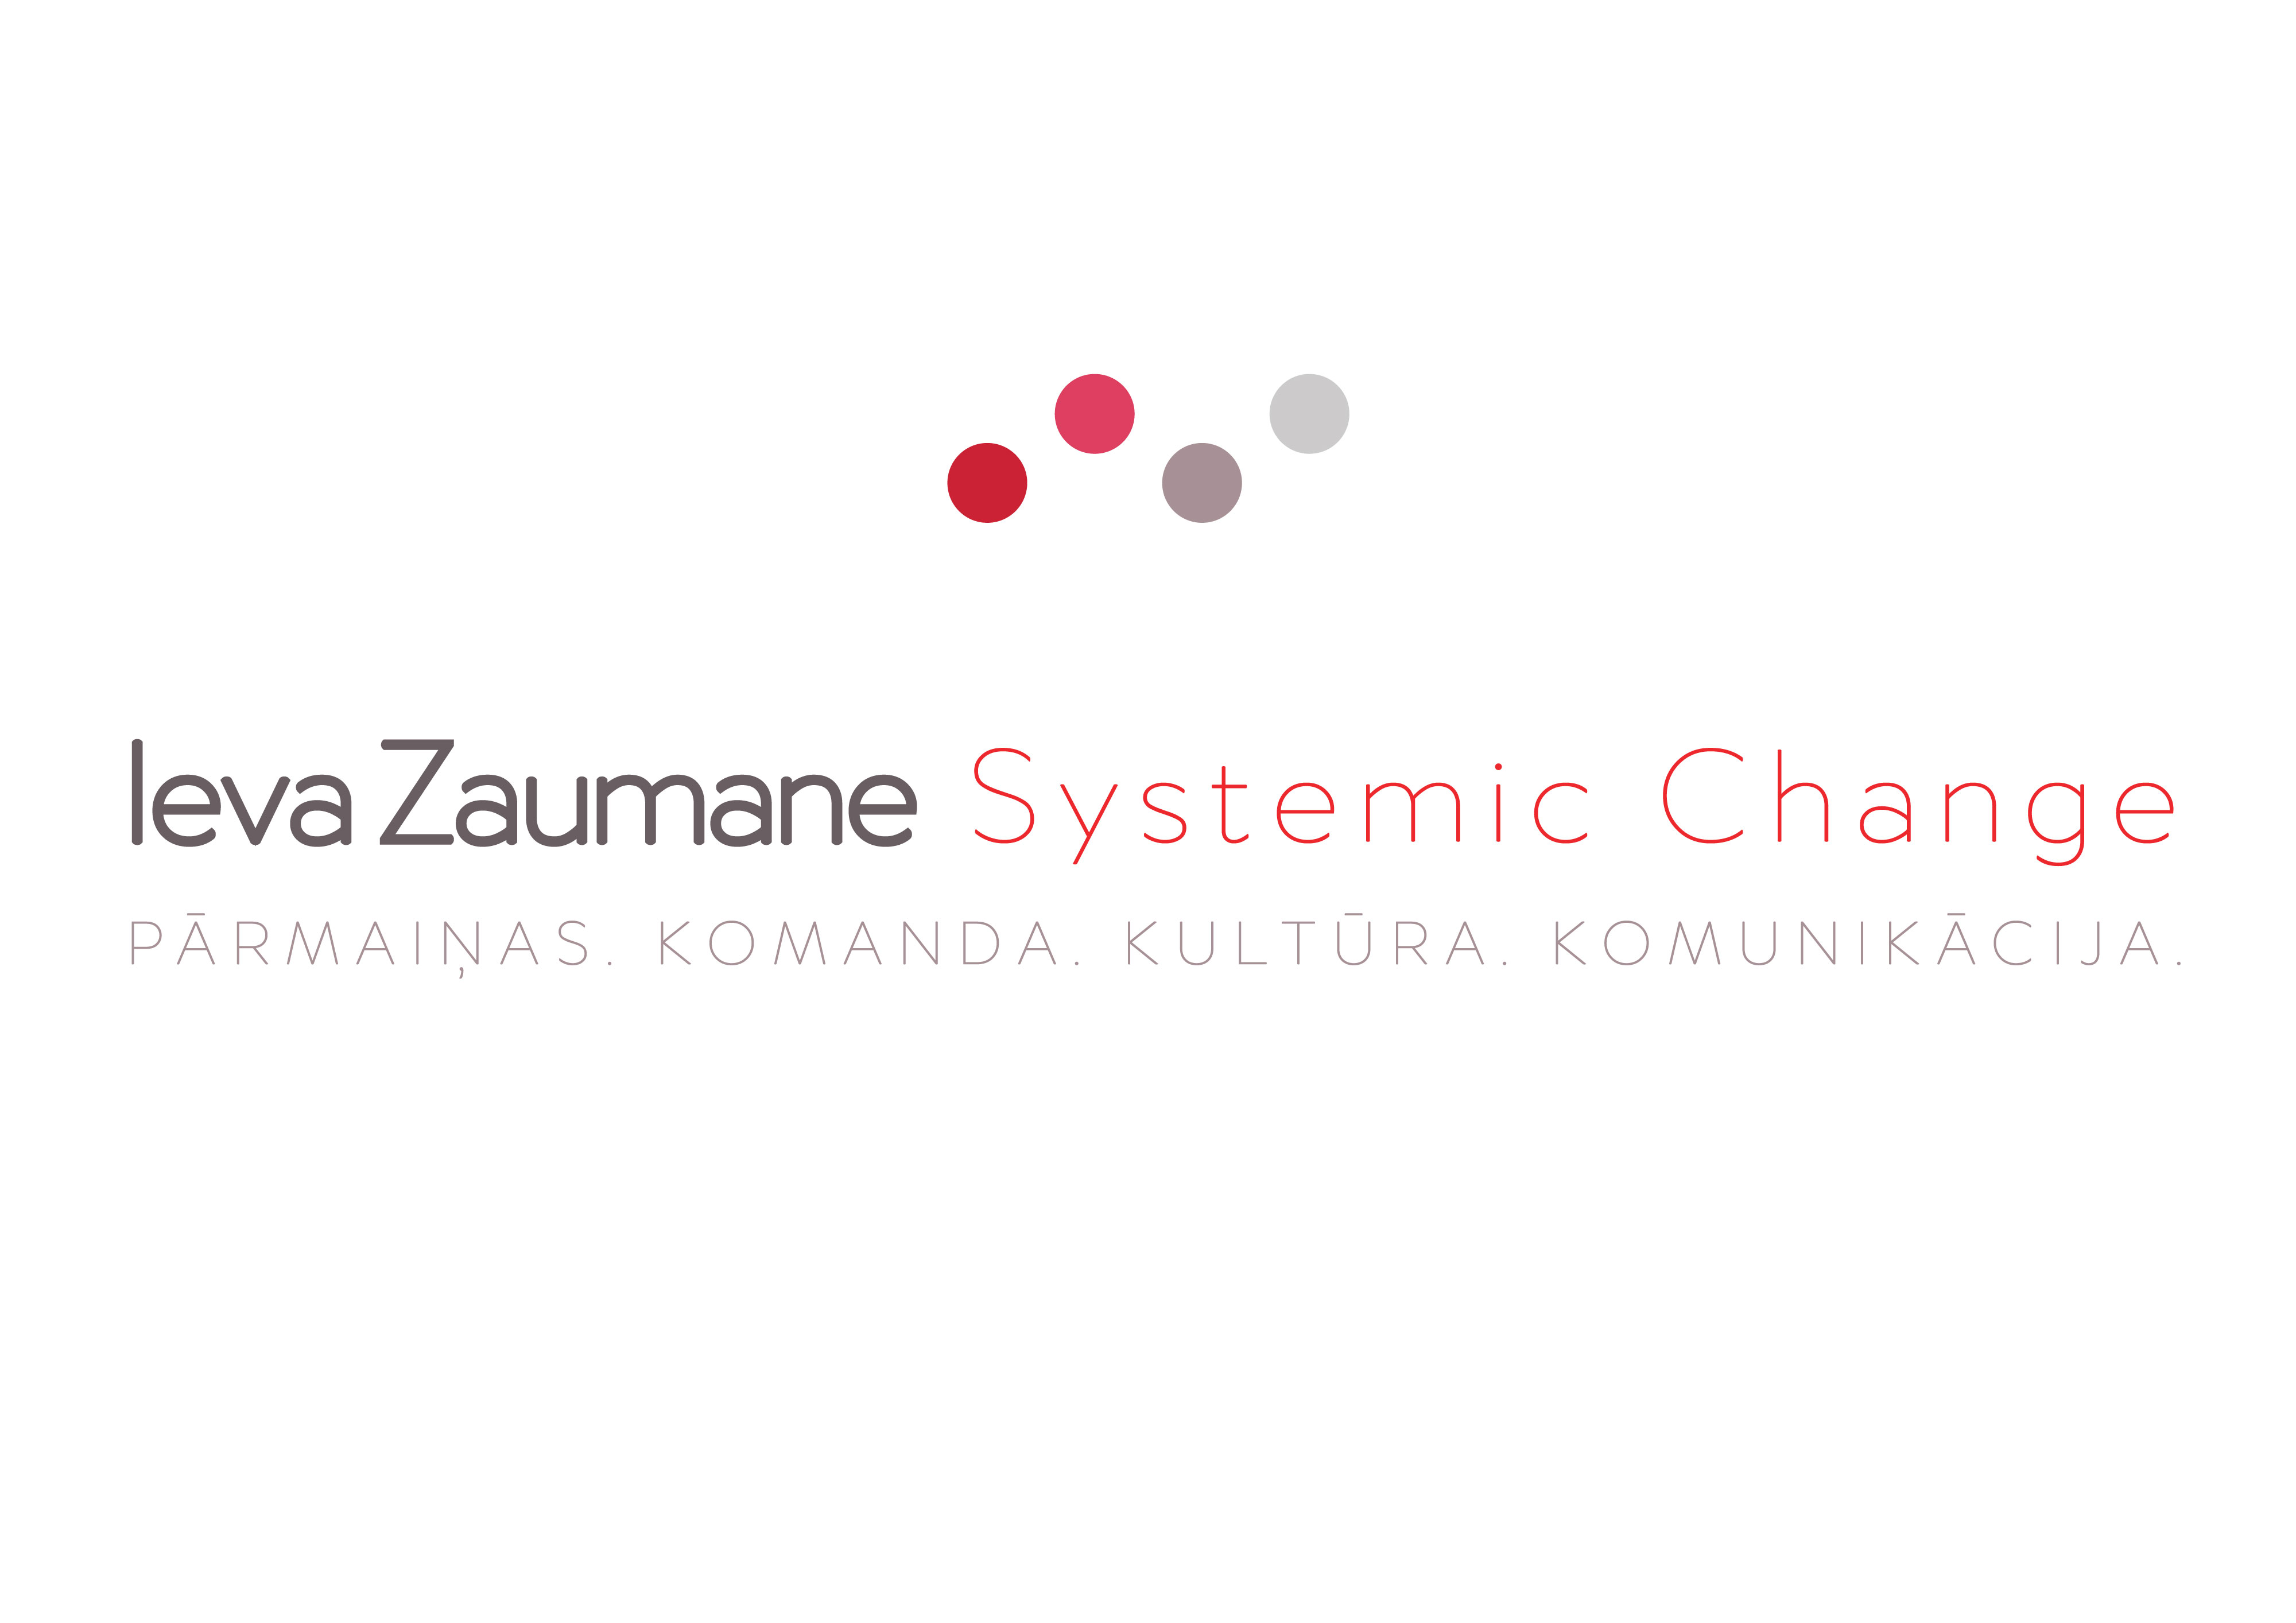 Ieva Zaumane Systemic Change SIA